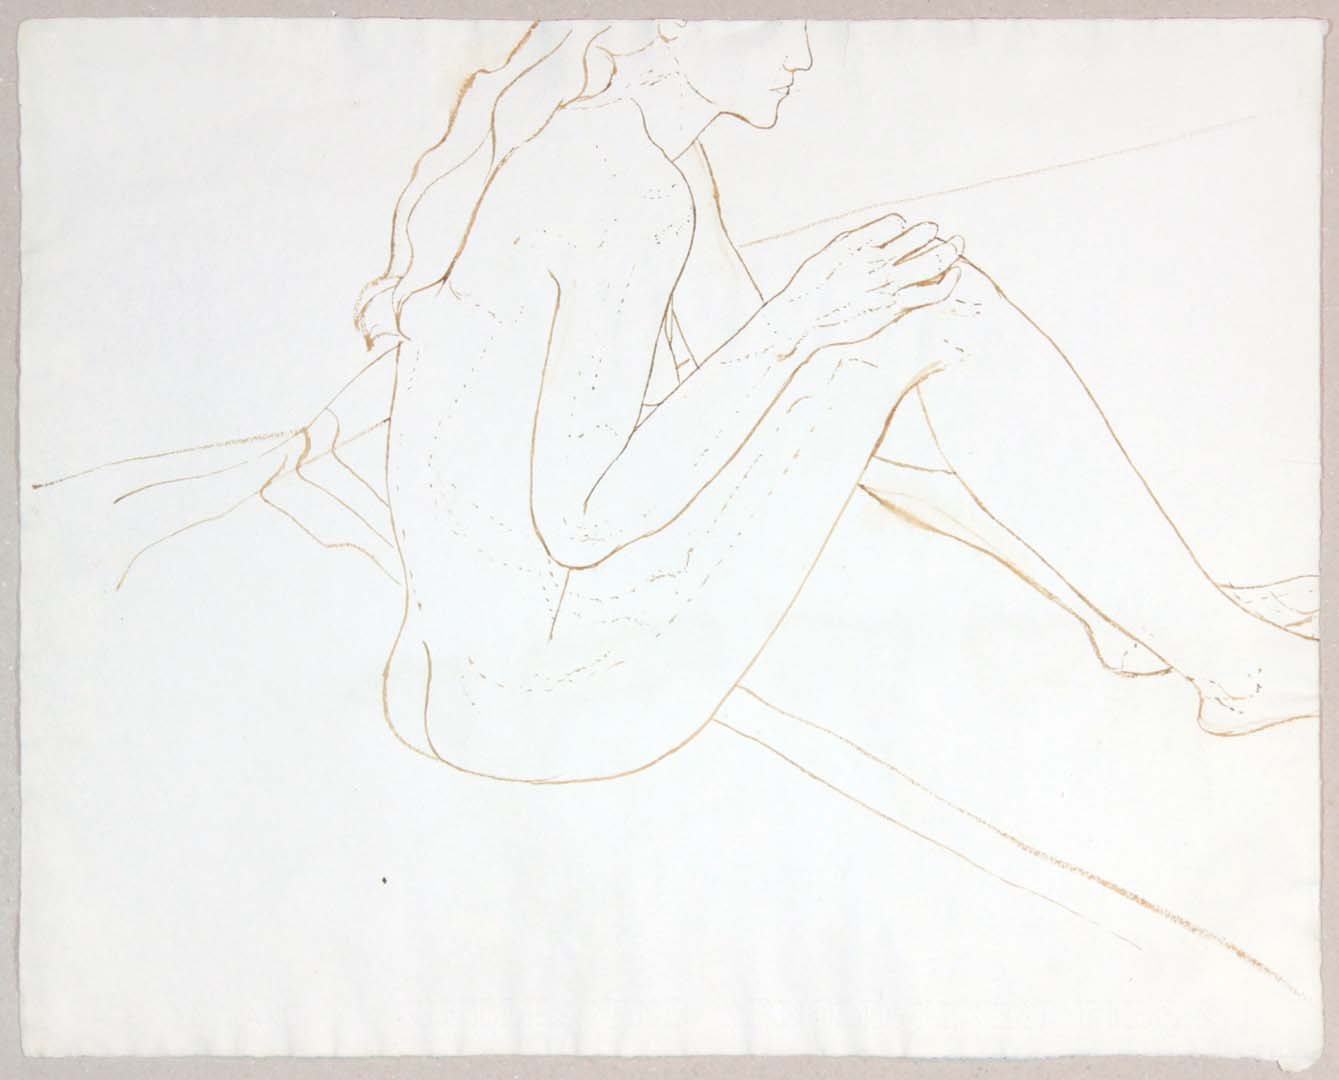 Seated Female Nude Wash 19 x 23.875